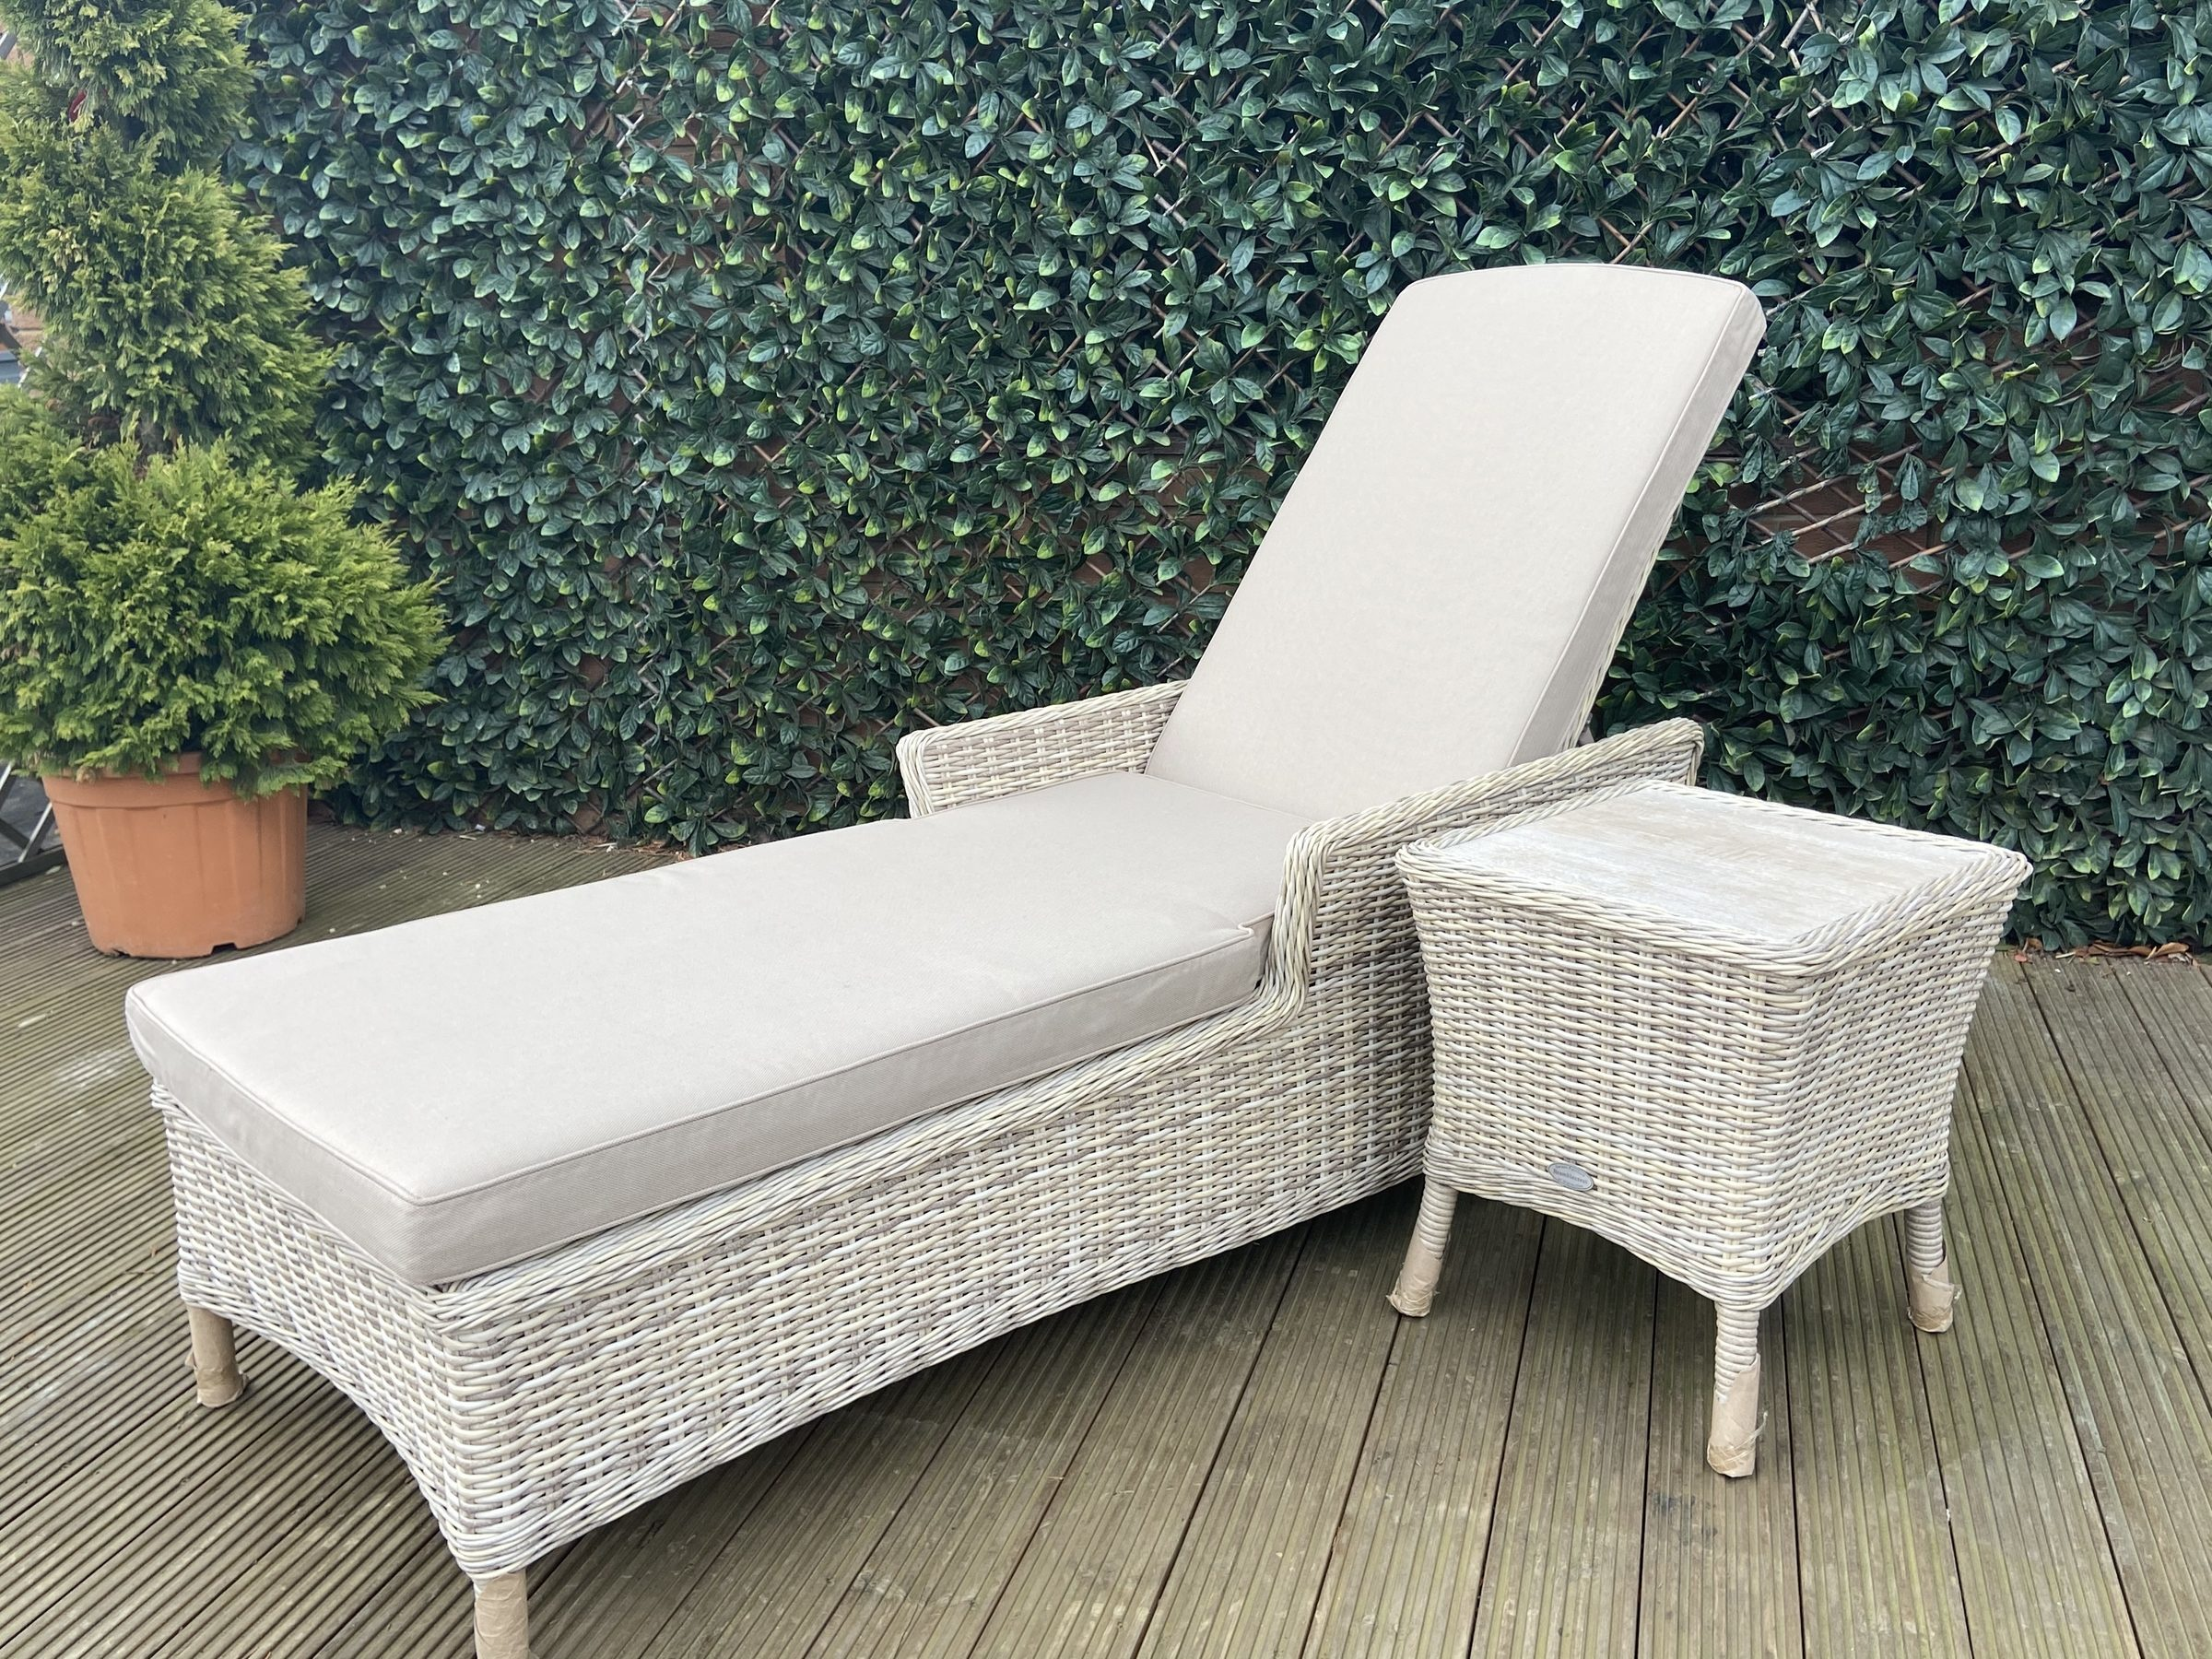 Bramblecrest Ascot Sun Lounger with High Coffee Table - Quinton Grey